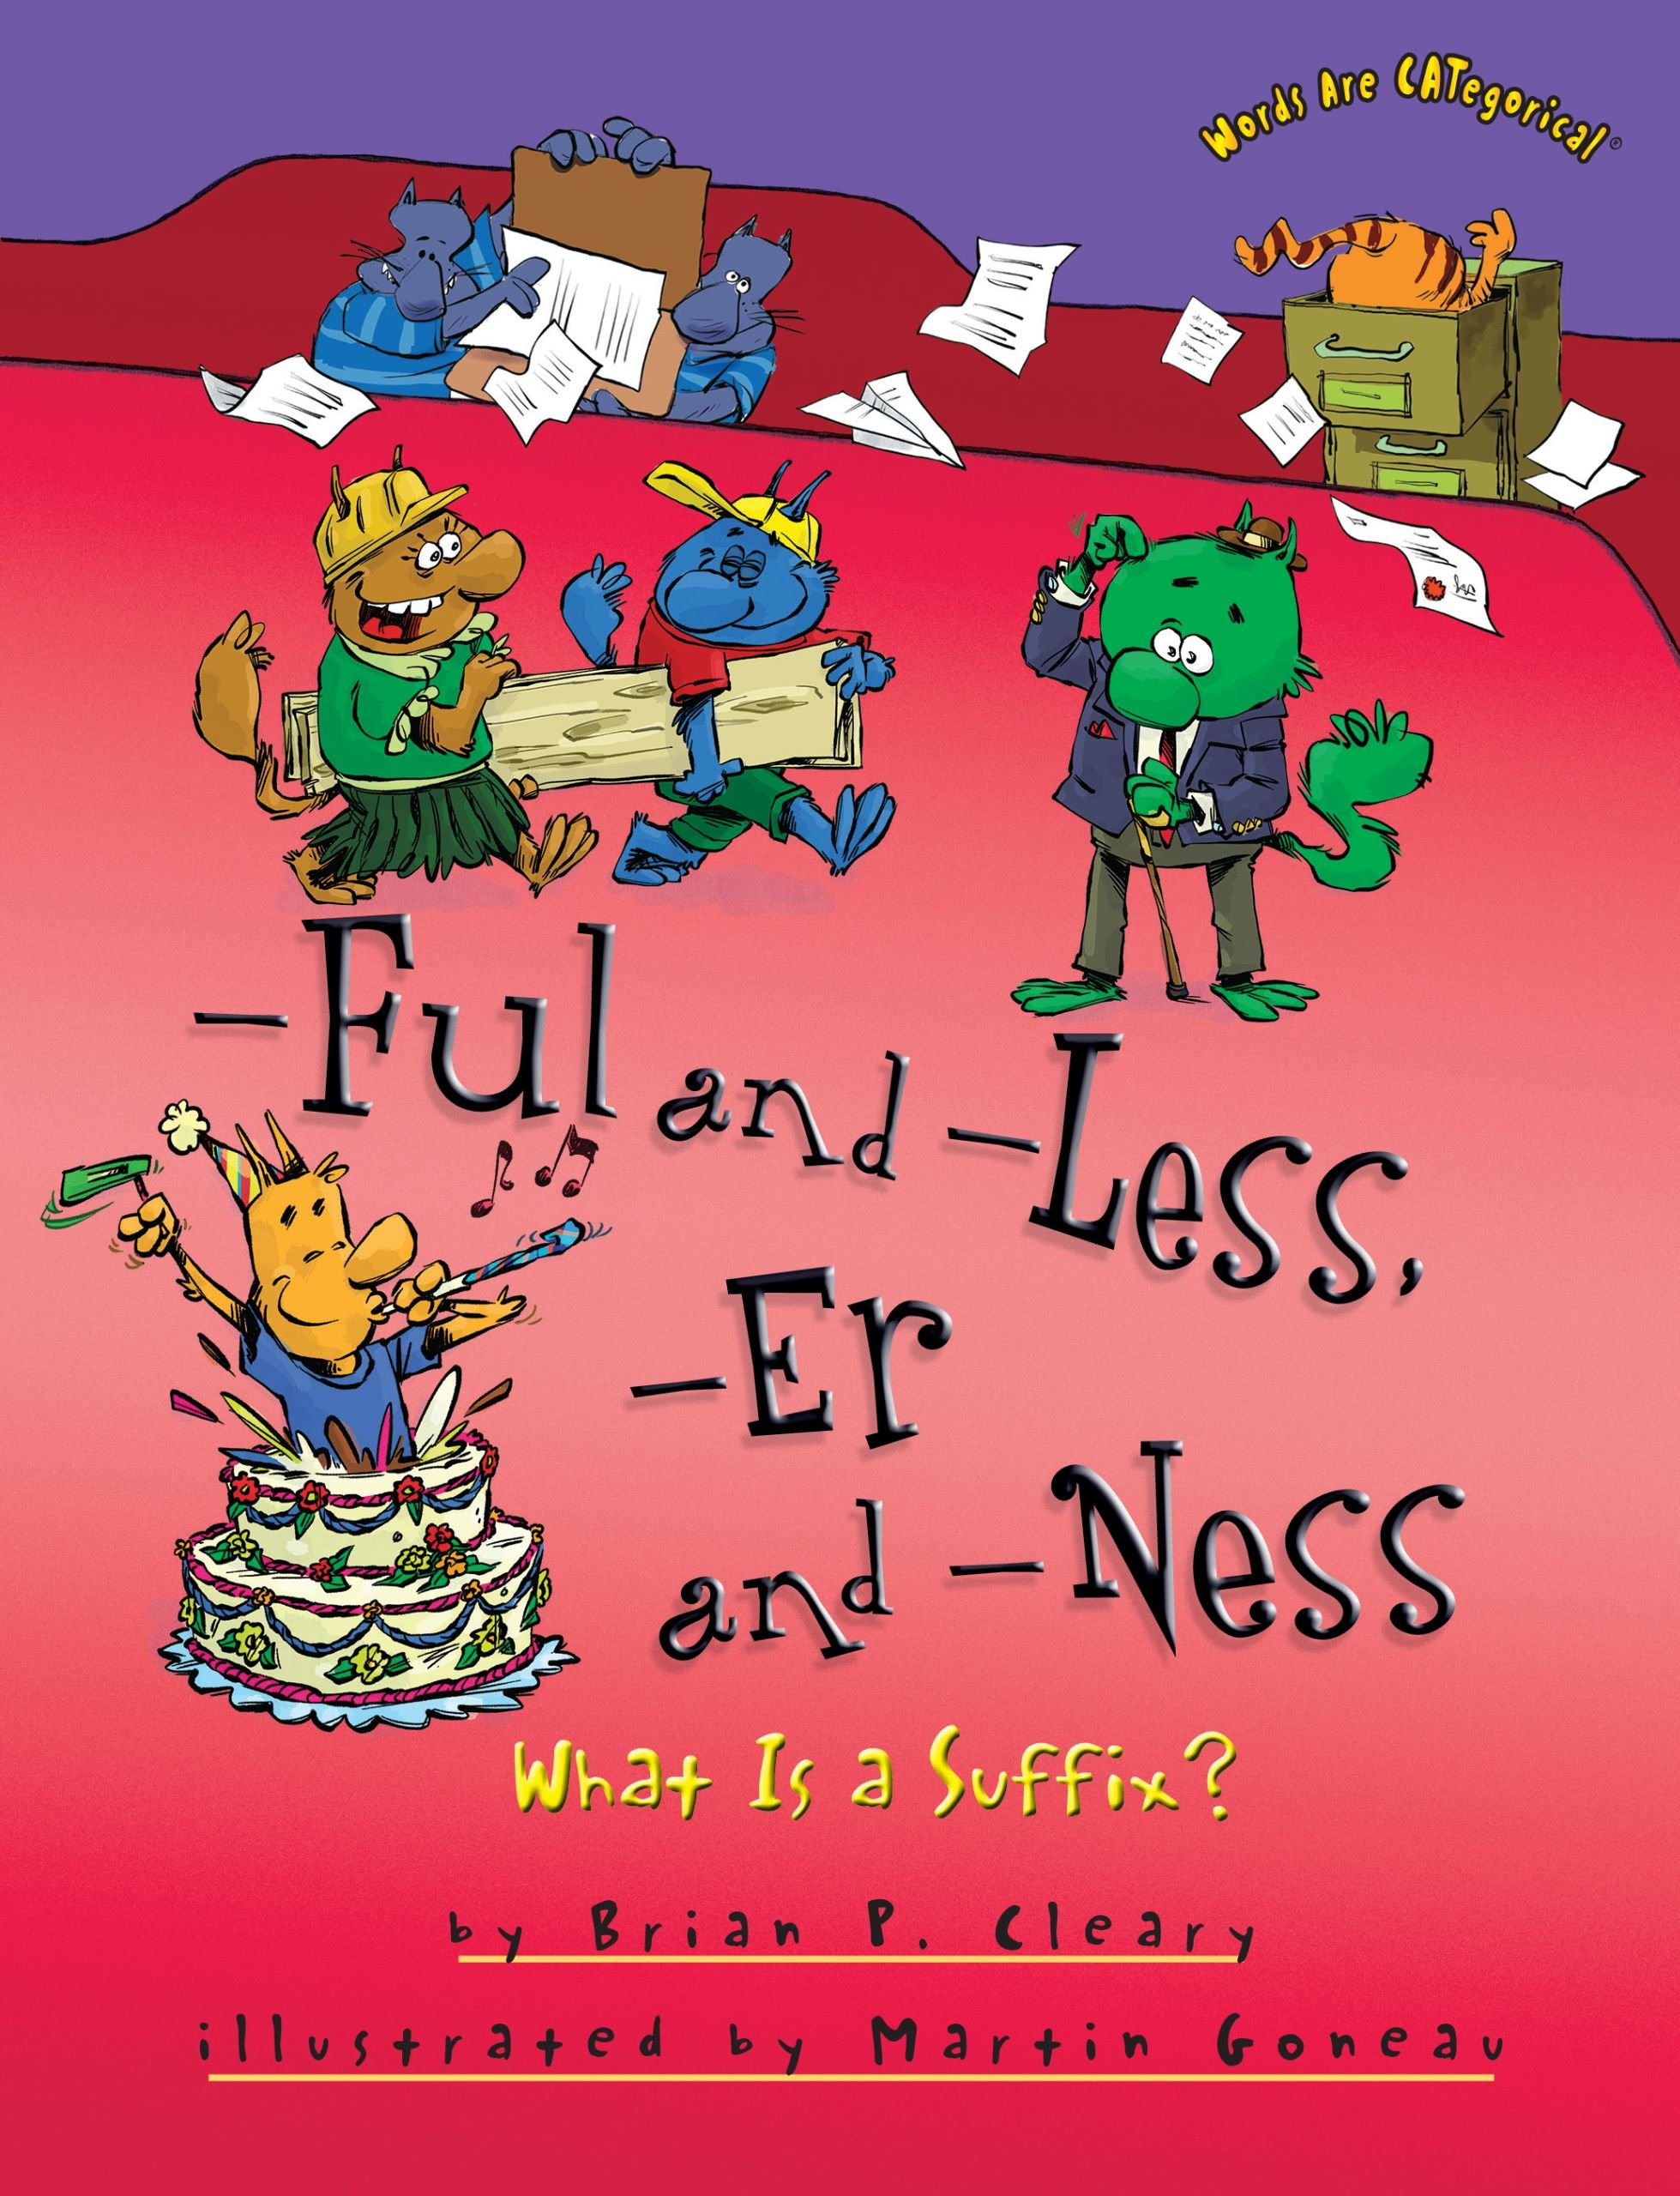 Ful and -Less, -Er and -Ness: What Is a Suffix? (Words Are Categorical)